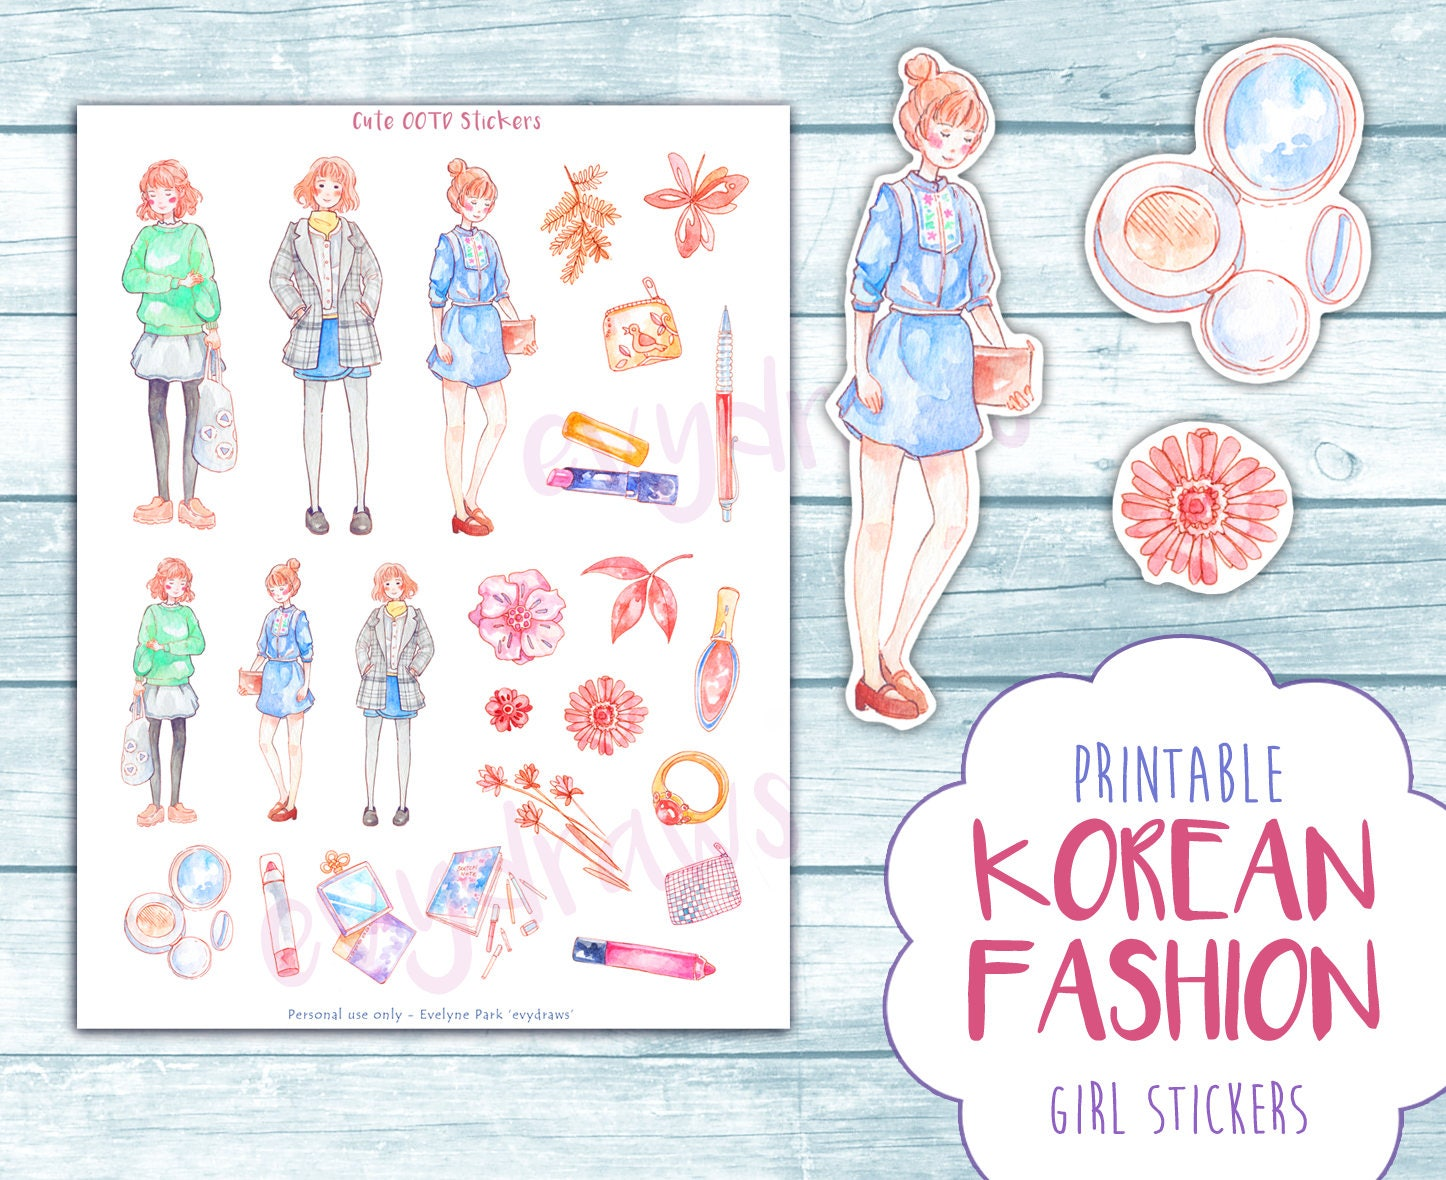 Printable Cute Fashion Stickers   OOTD sticker digital download ... for Cute Korean Printable Stickers  165jwn